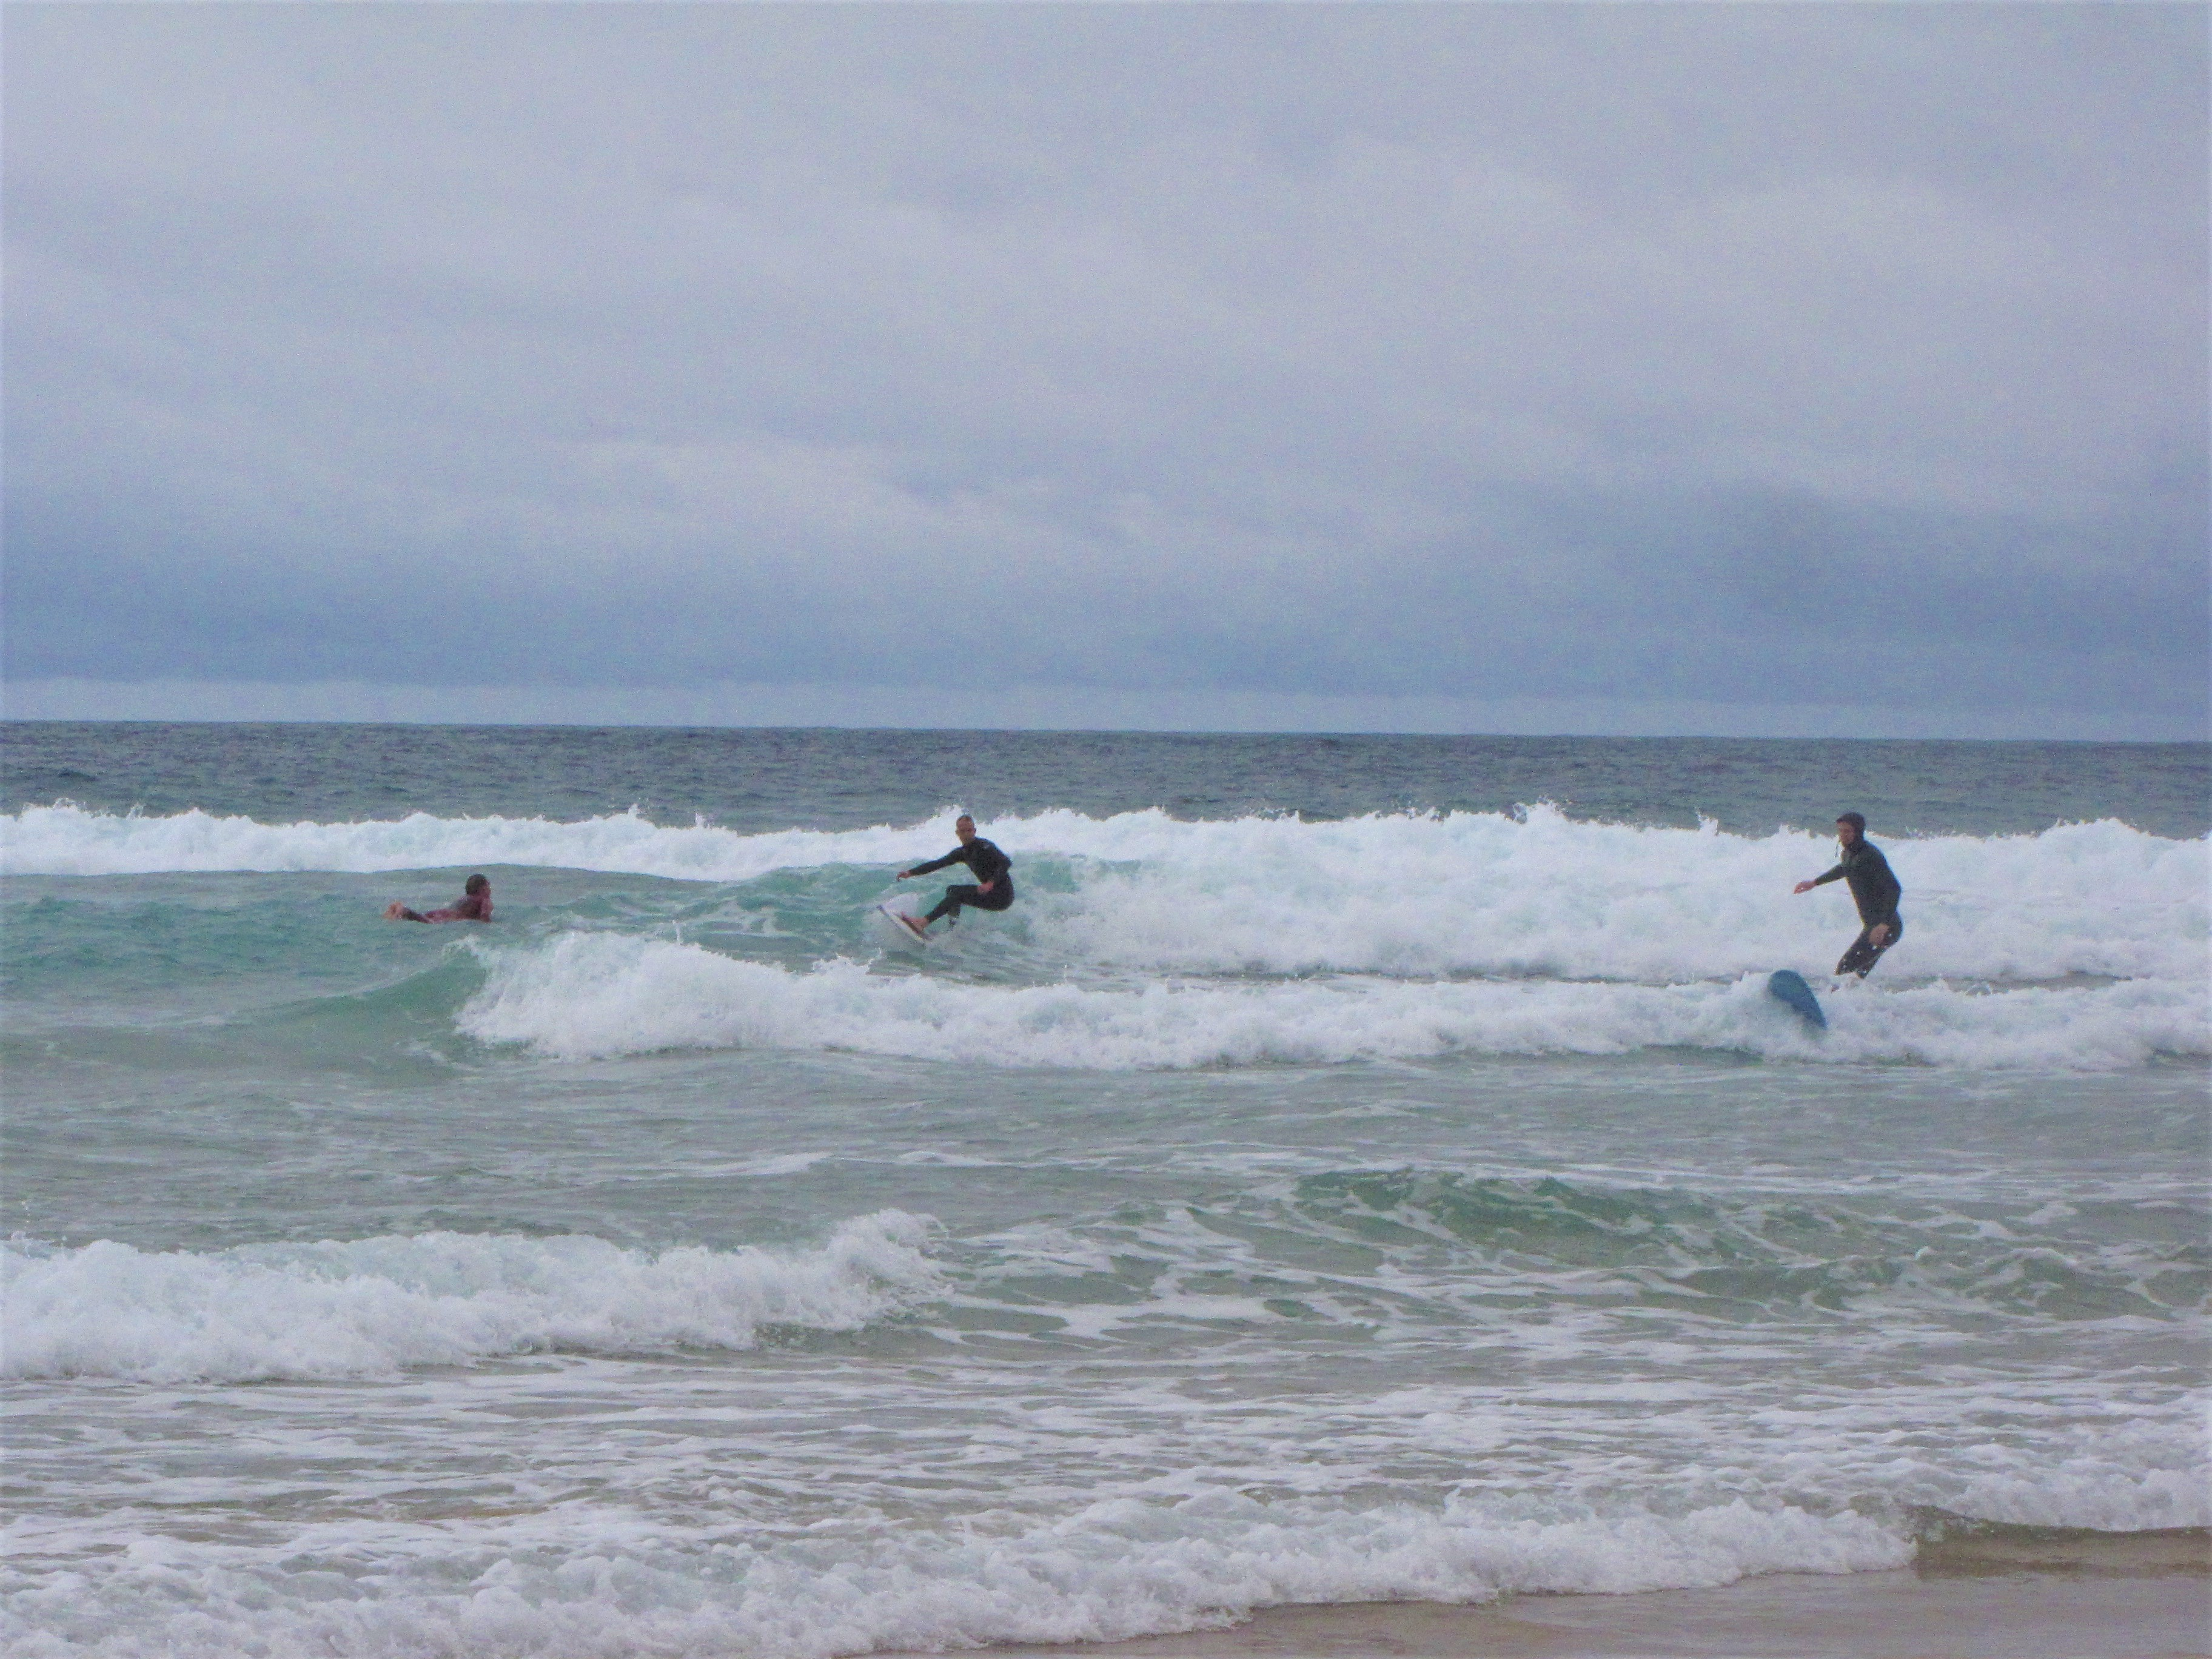 after lunch tonel surf guiding